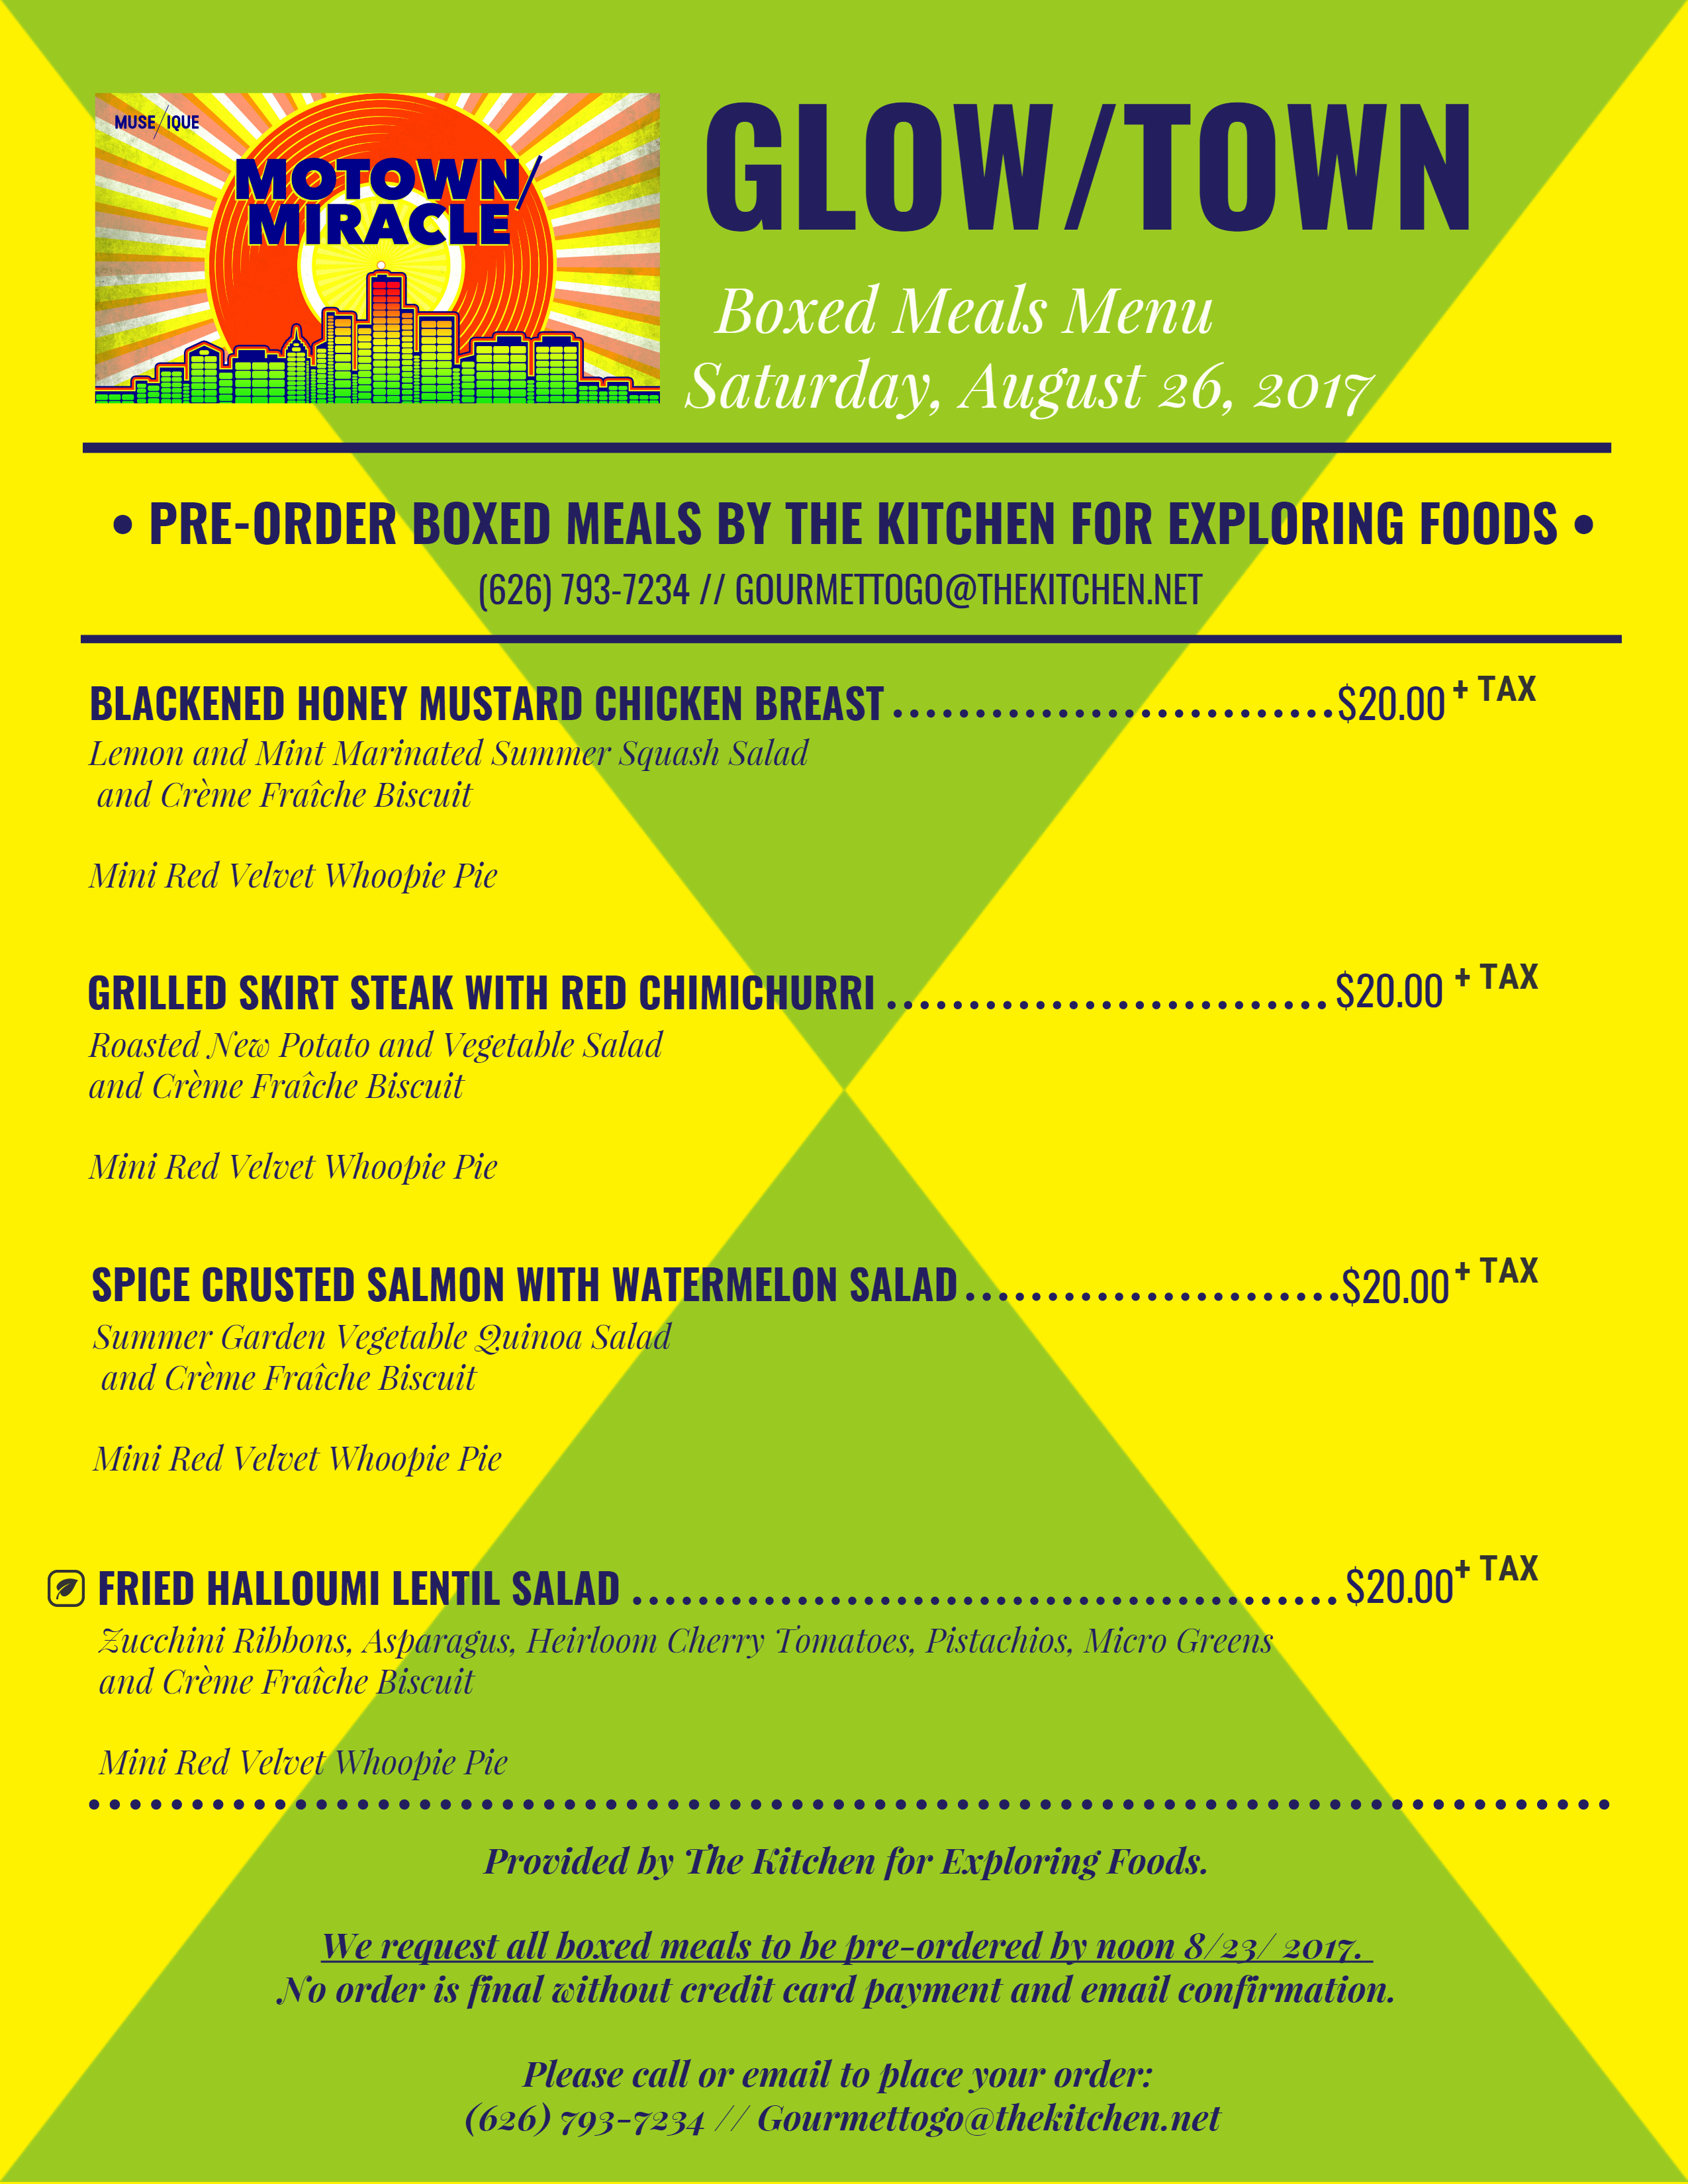 Menu for Boxed Meals (Pre-Order)